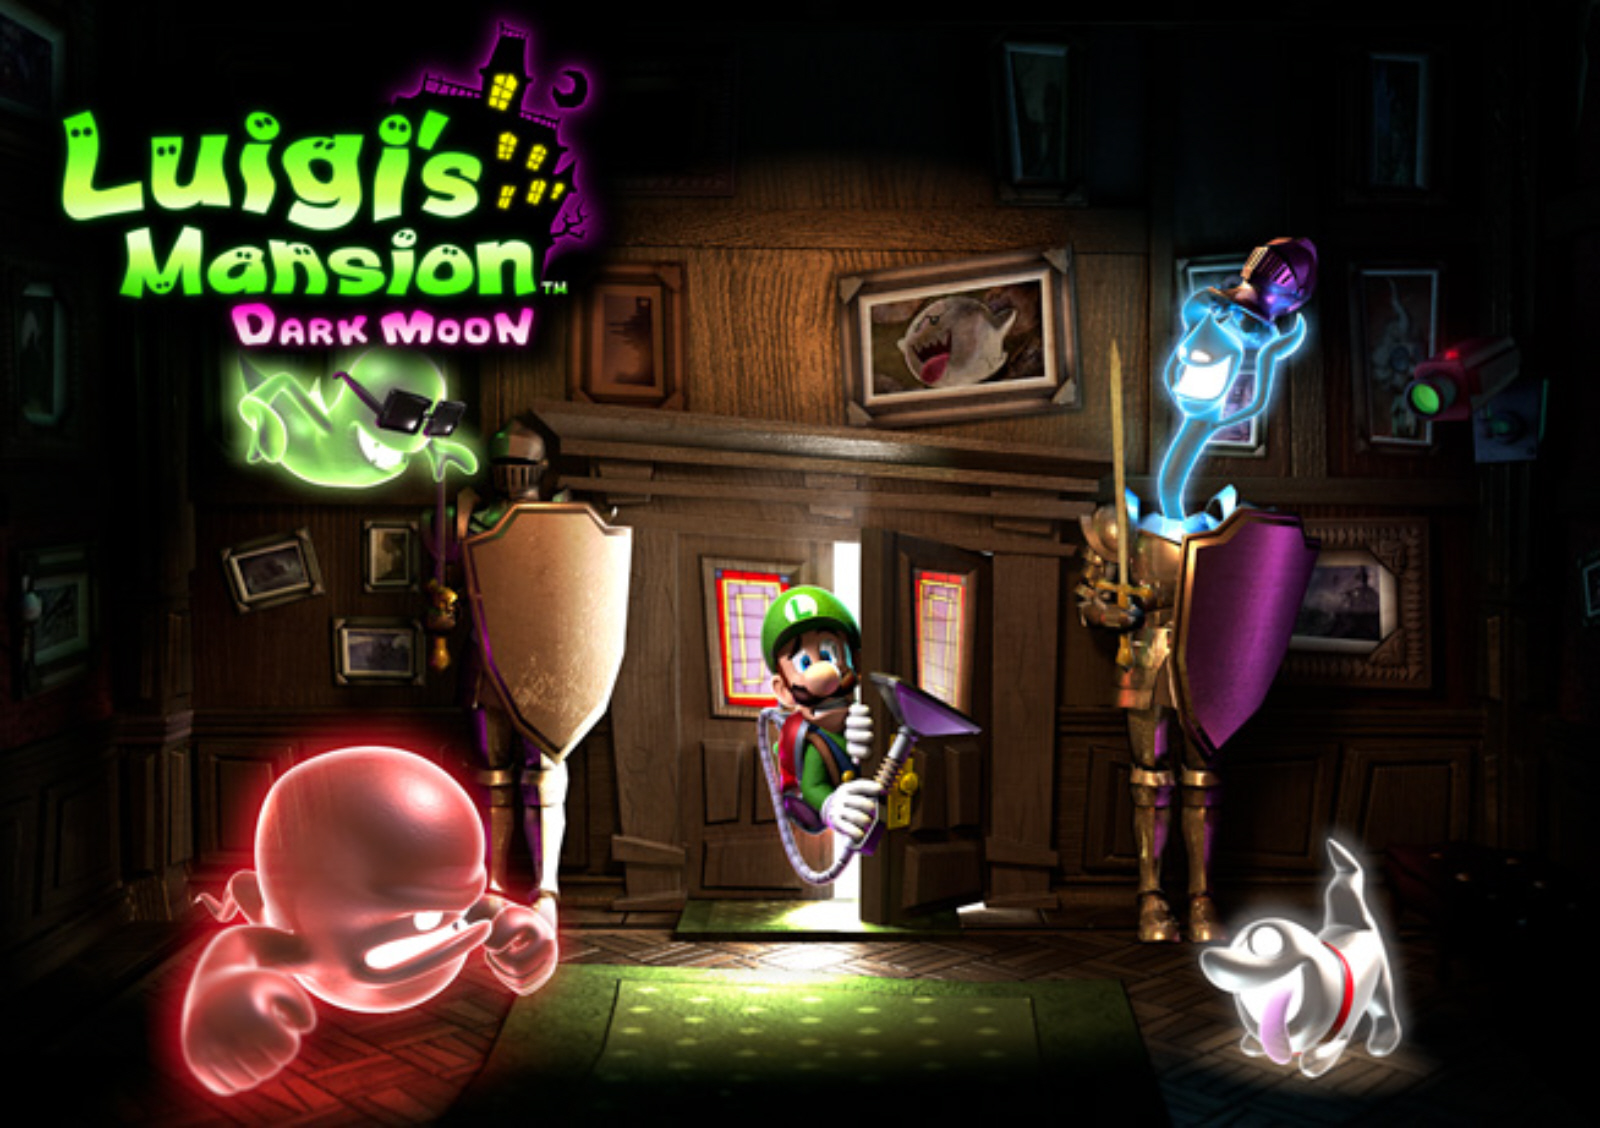 LUIGI'S MANSION 3:NOW FEATURING PAID DLC FOR SCARESCRAPER AND SCREAMPARK MODES